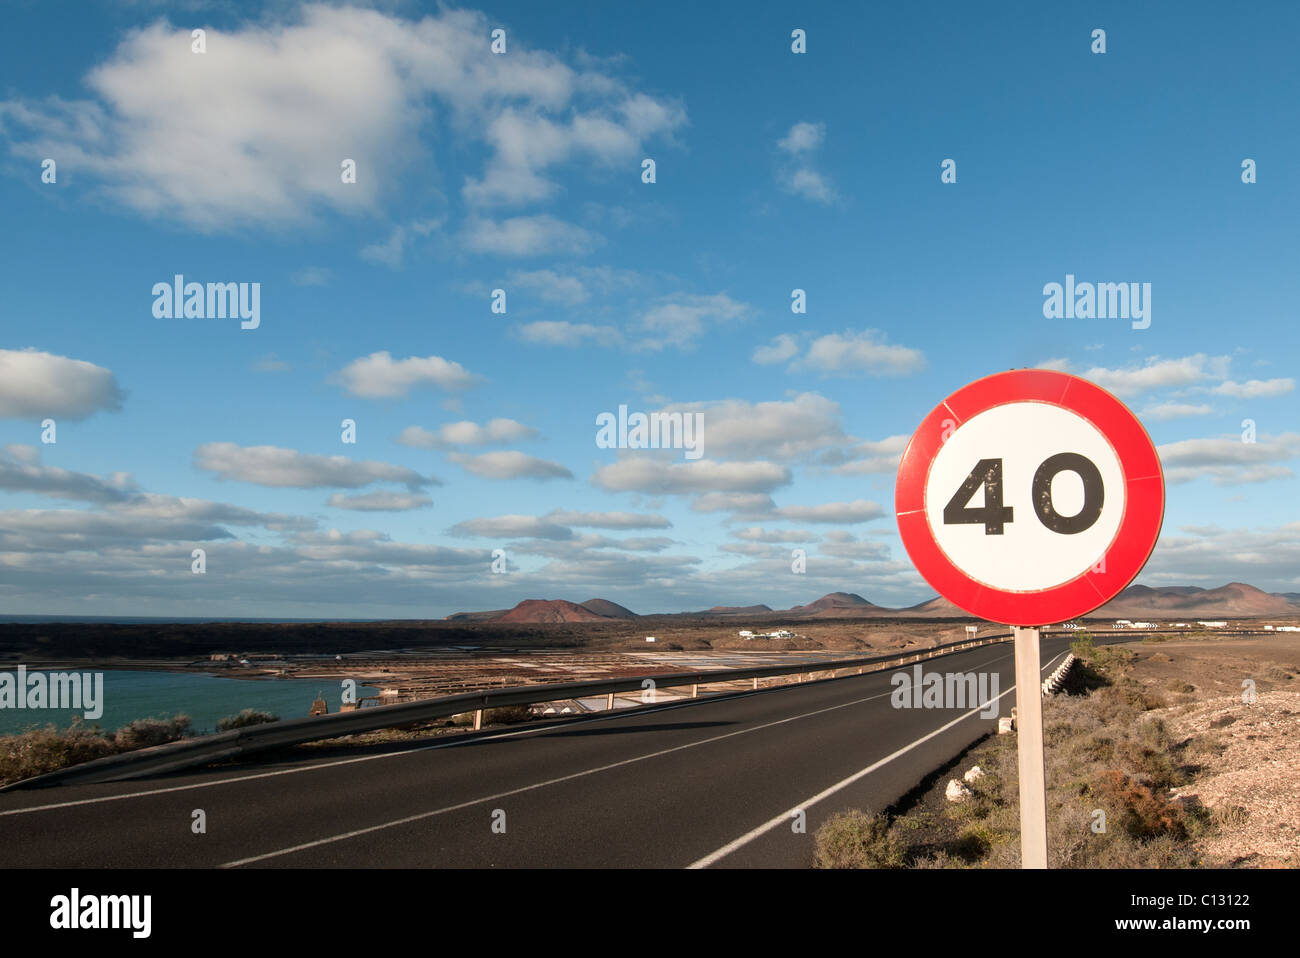 40 miles per hour road sign - Stock Image